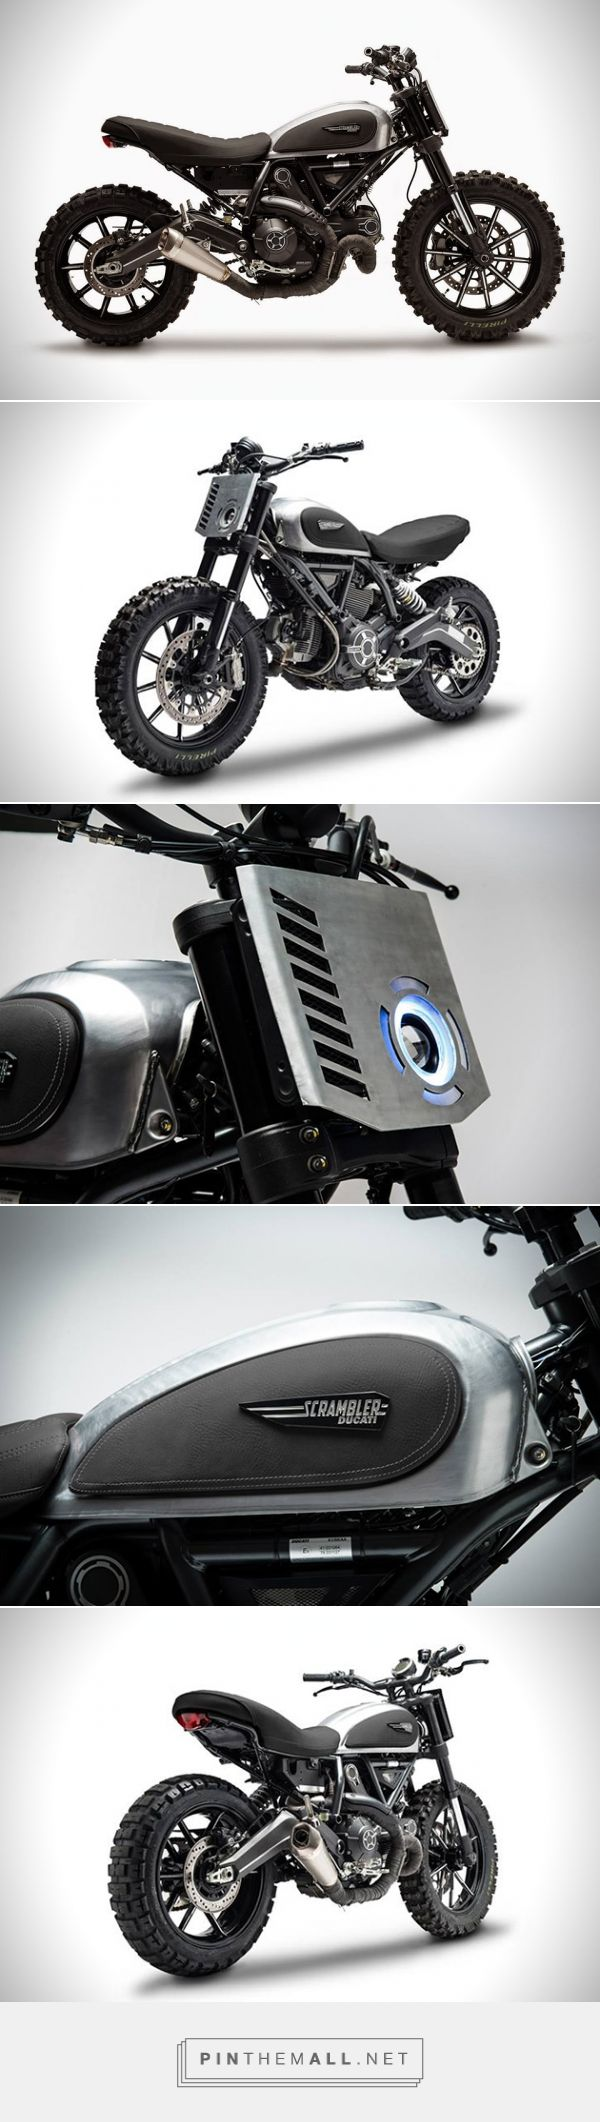 Ducati Scrambler Dirt Tracker | HiConsumption - created via http://pinthemall.net